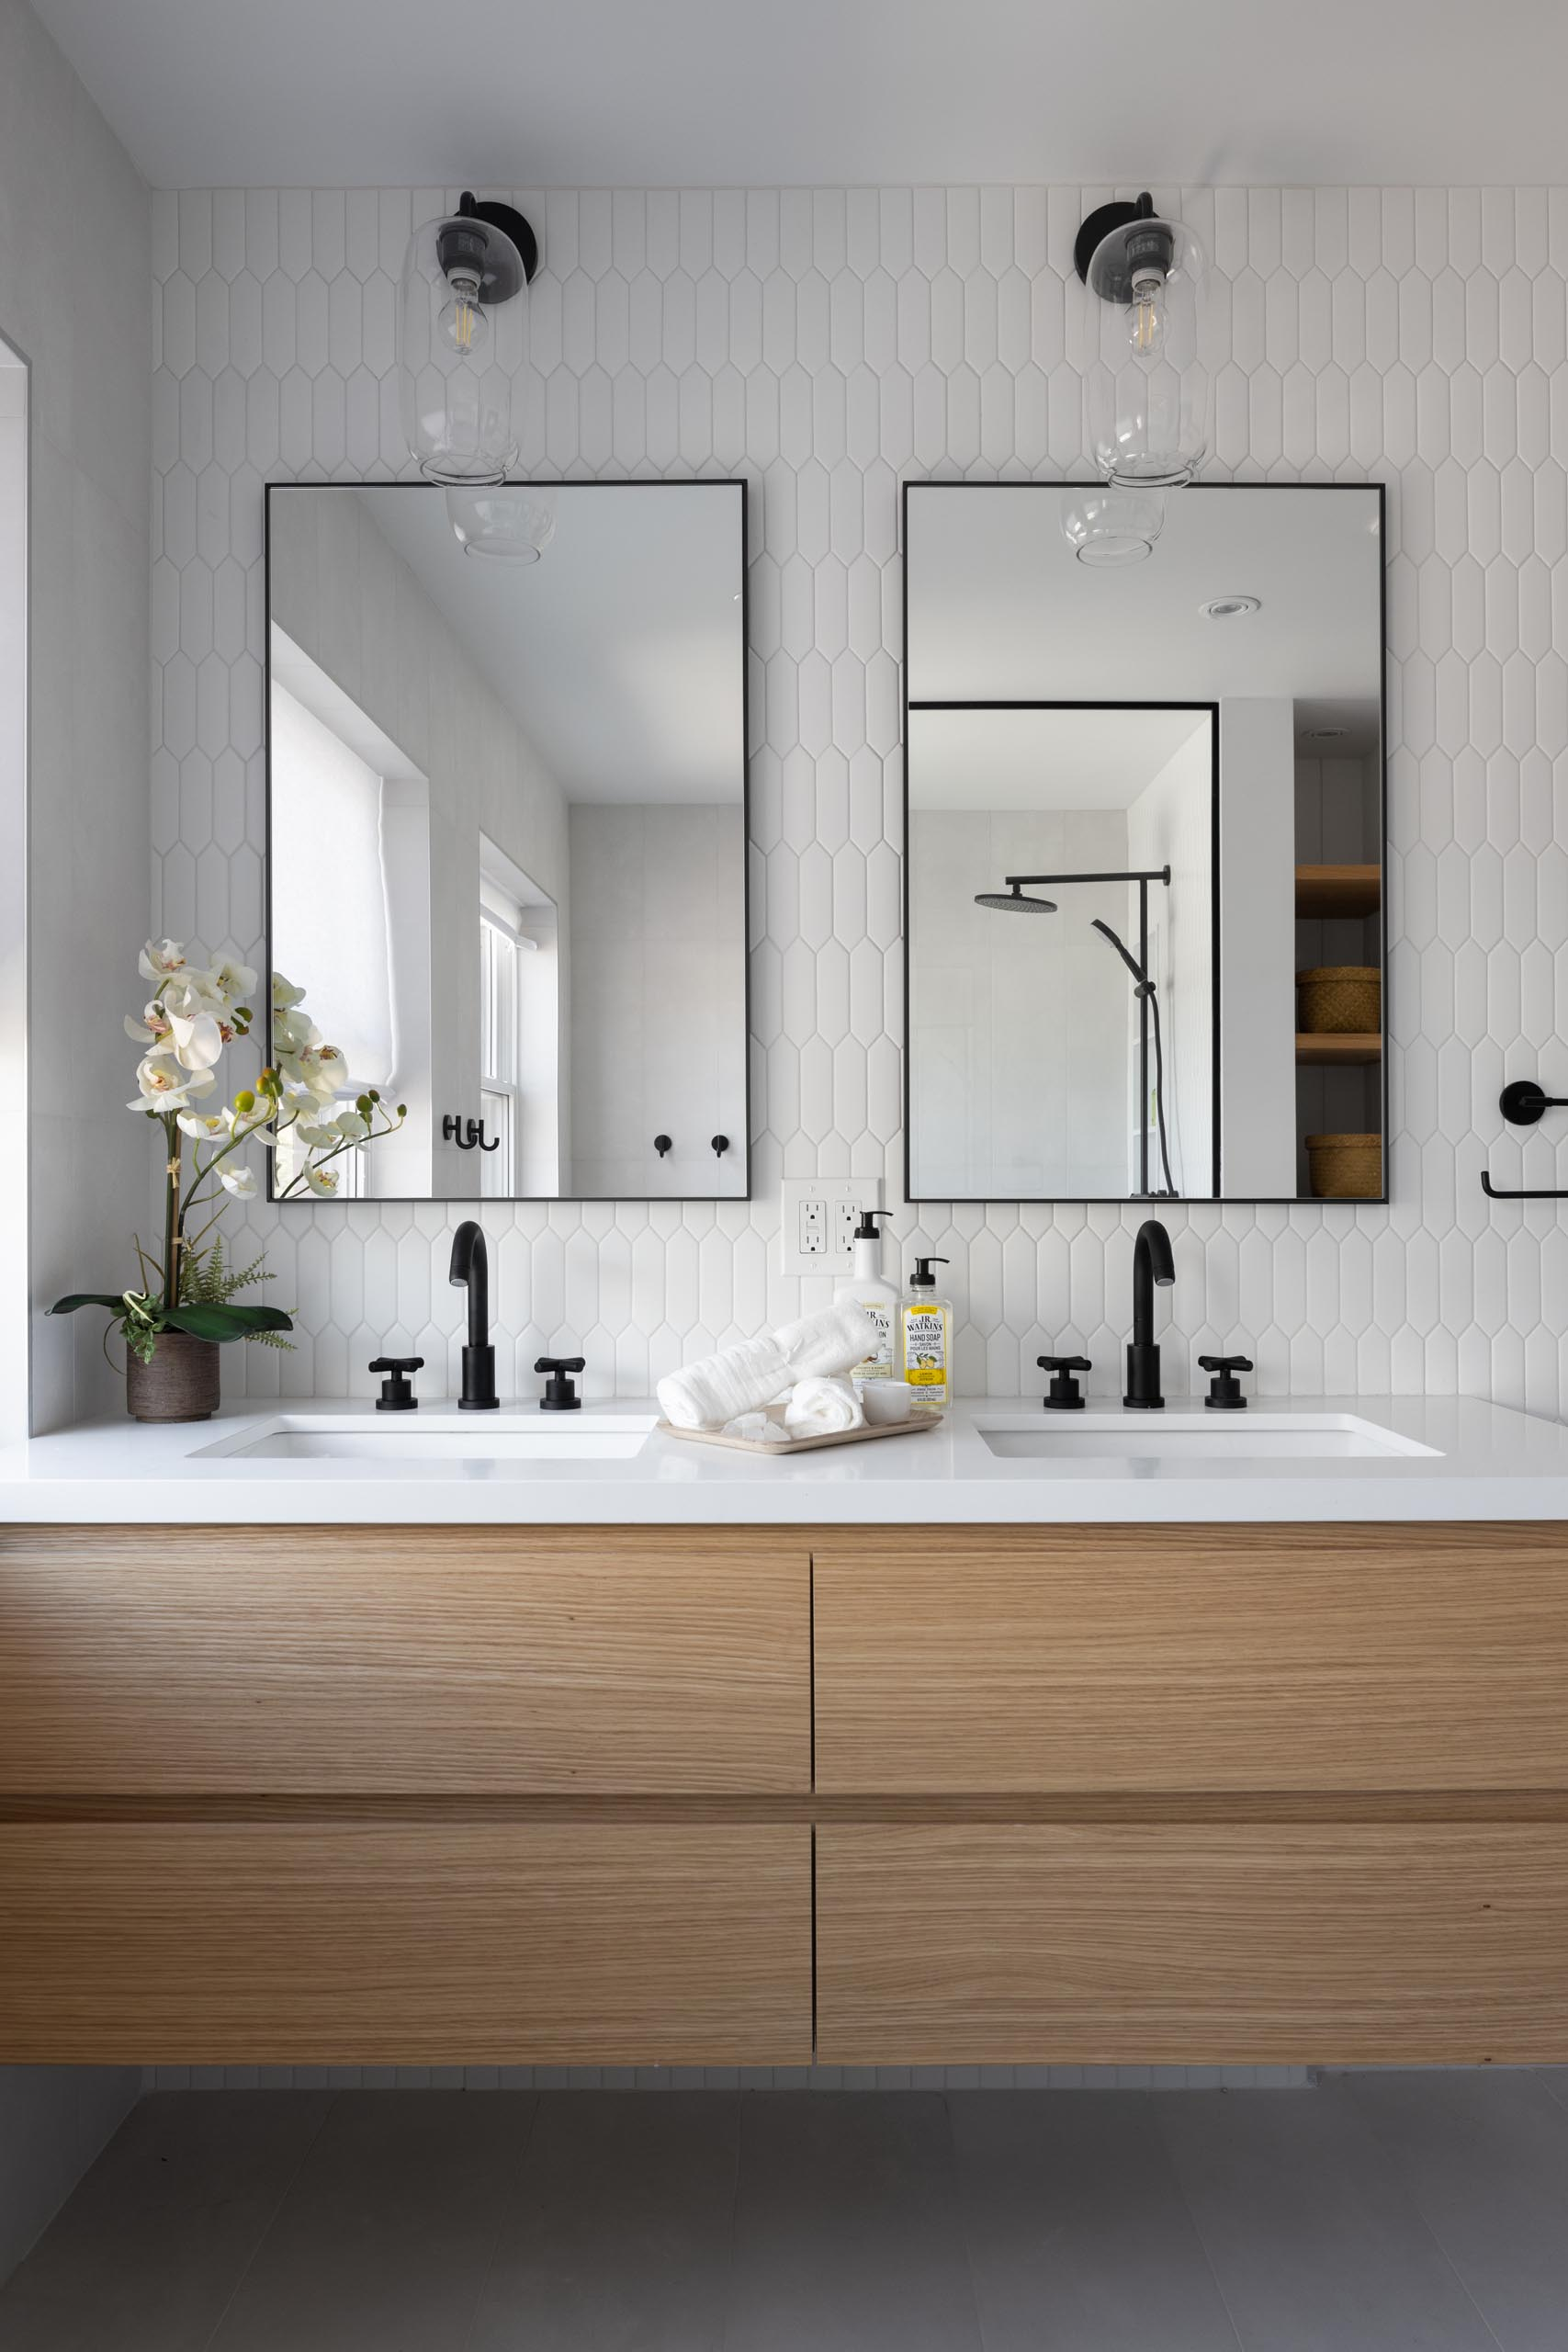 This modern bathroom includes a picket-style tile installation on the wall, a wood vanity with double sinks and black framed mirrors.